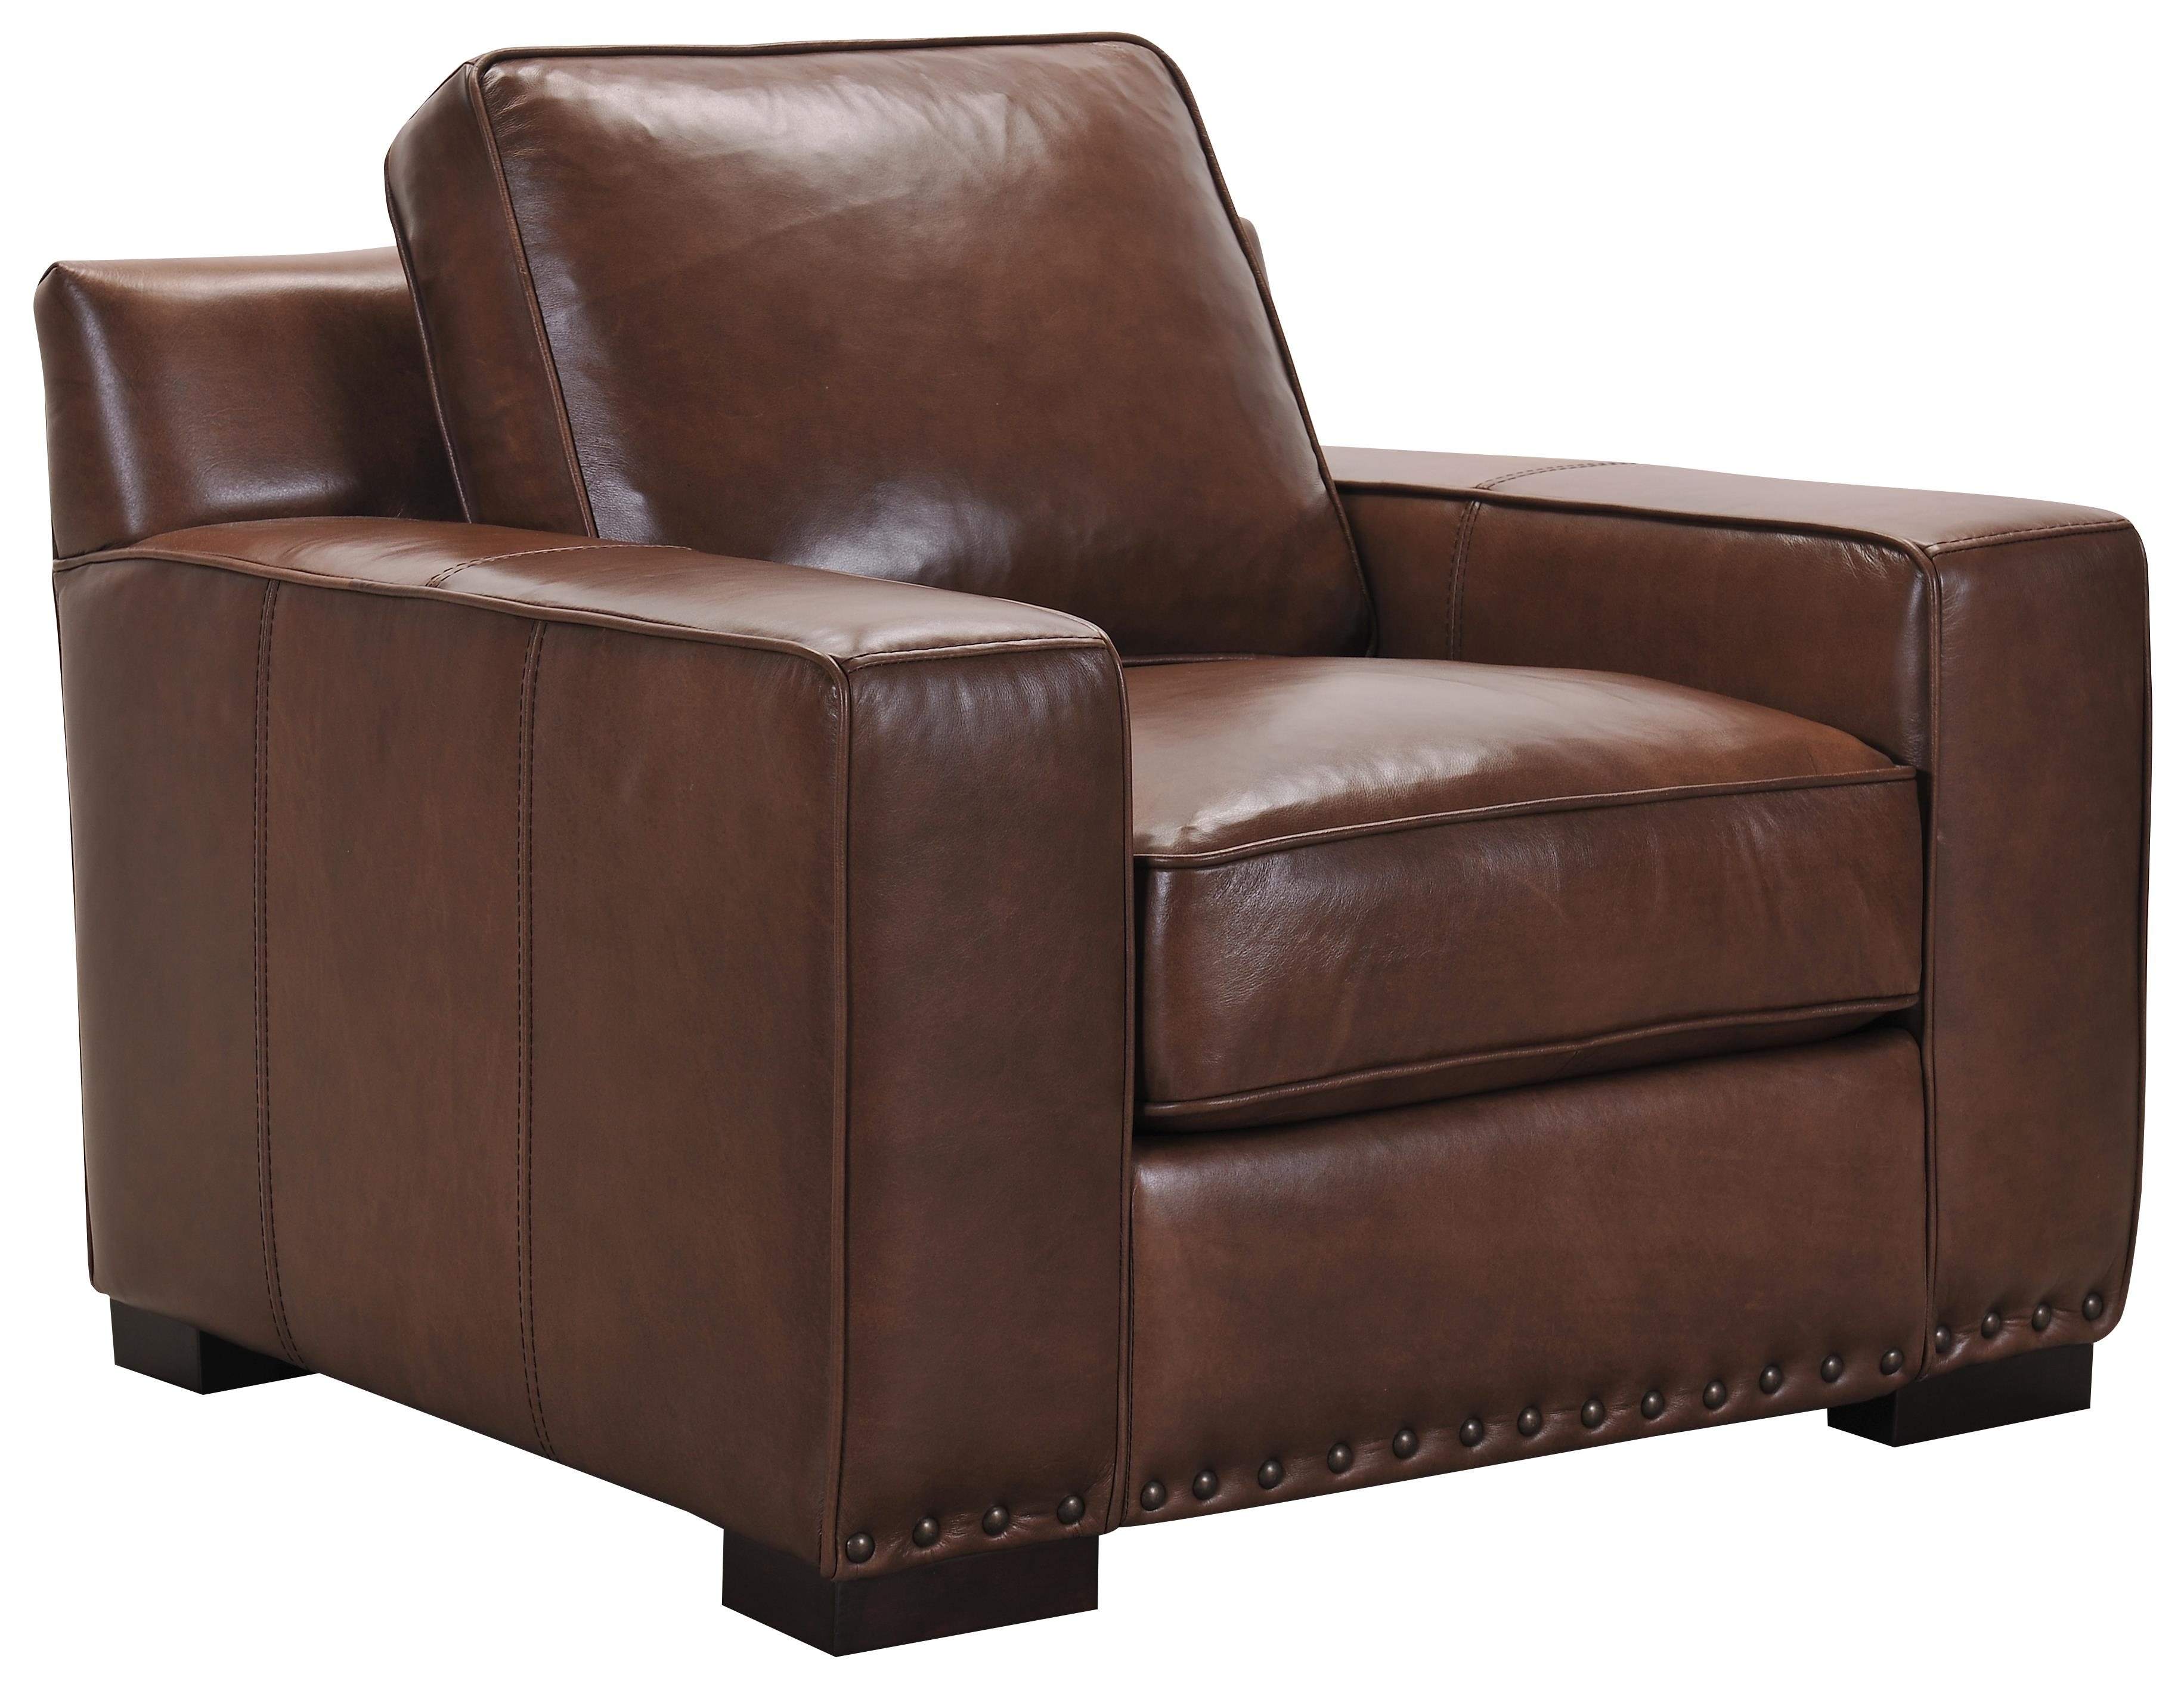 Belfort Select Patrick Brown Leather Chair - Item Number: 3584-1P